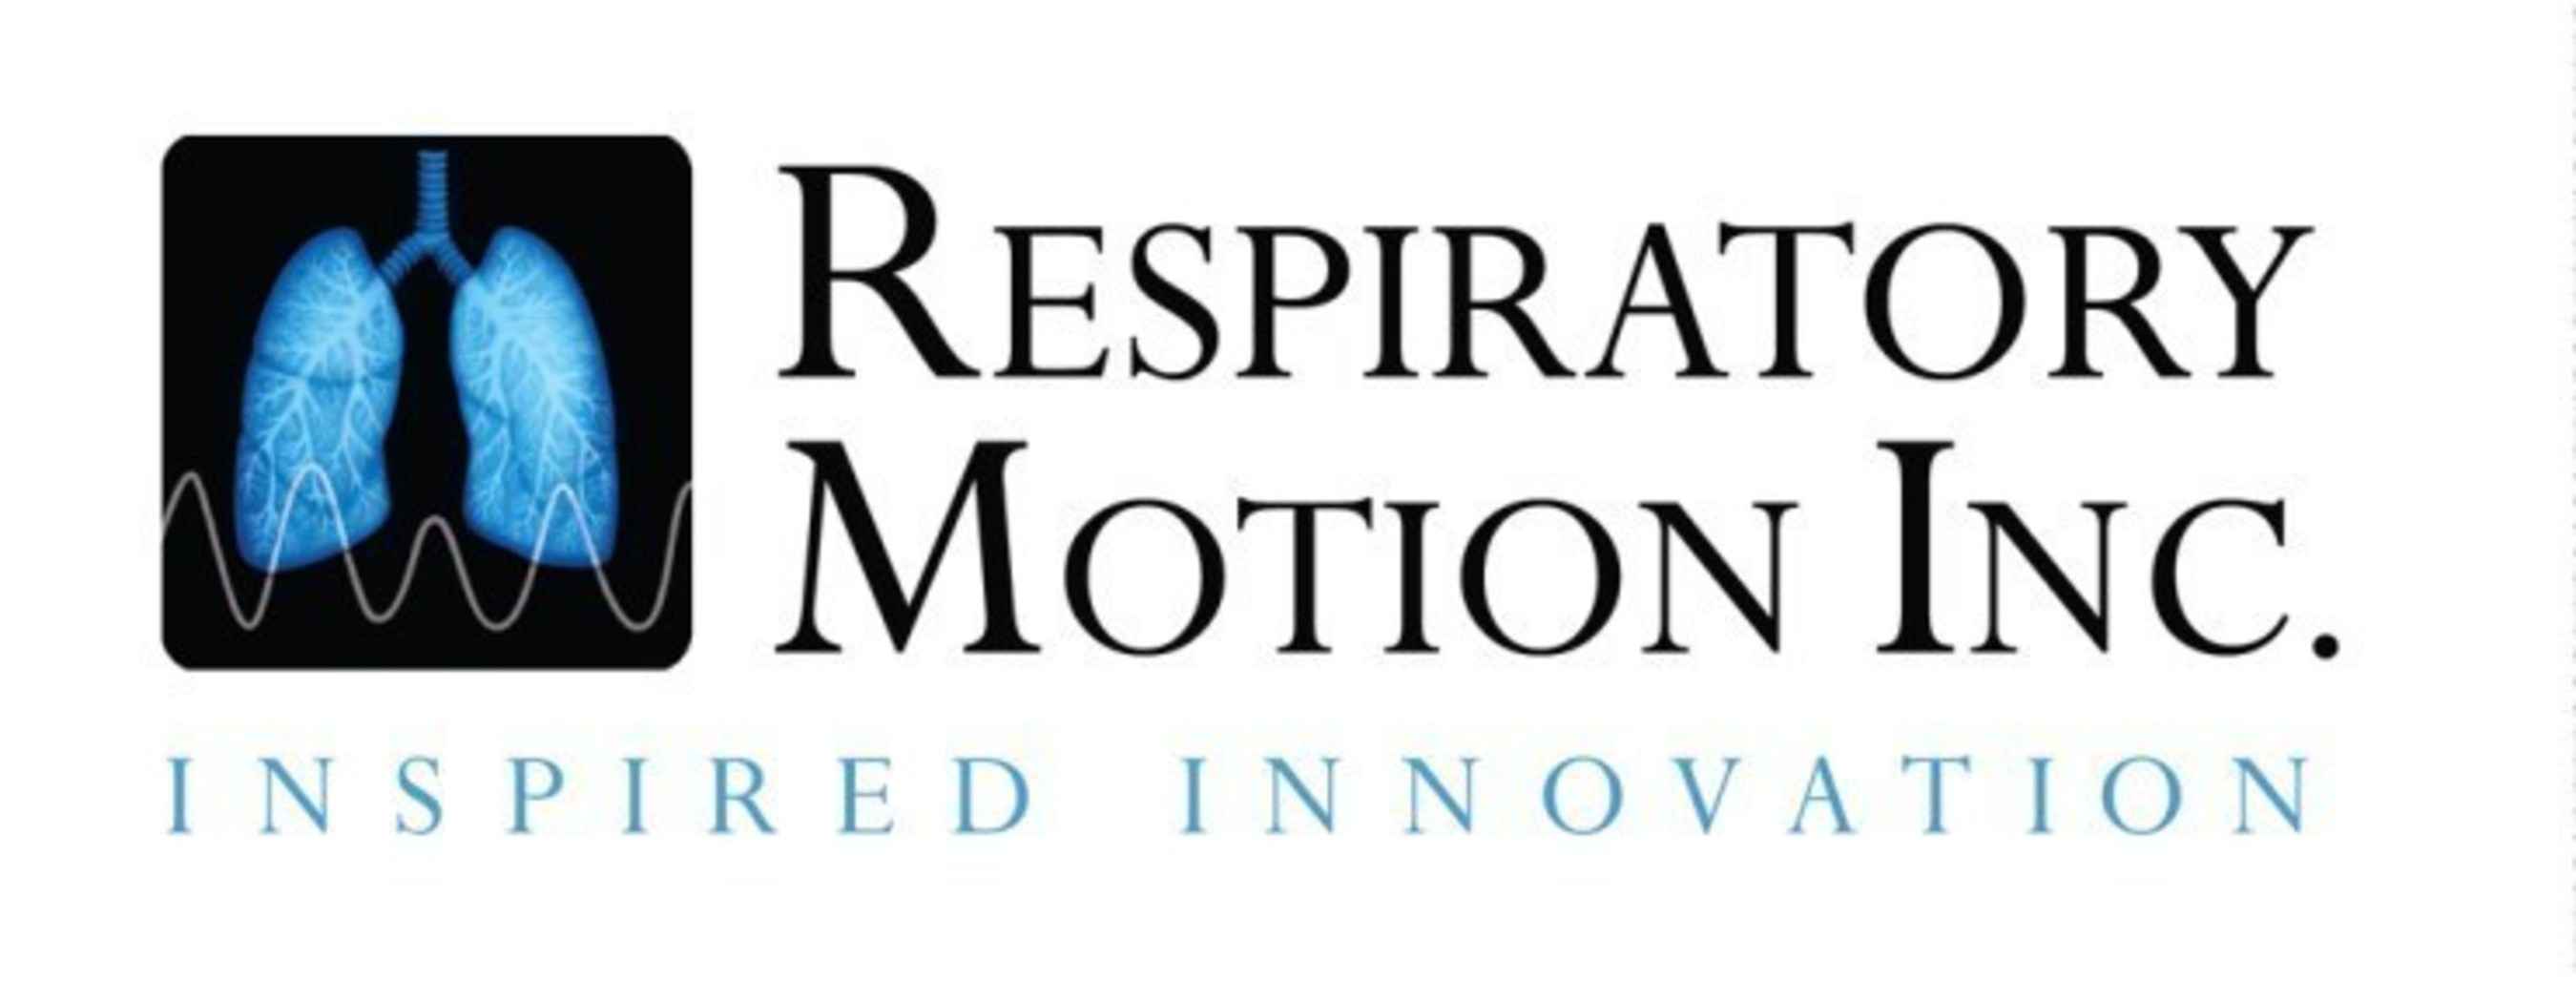 Respiratory Motion, Inc. Logo